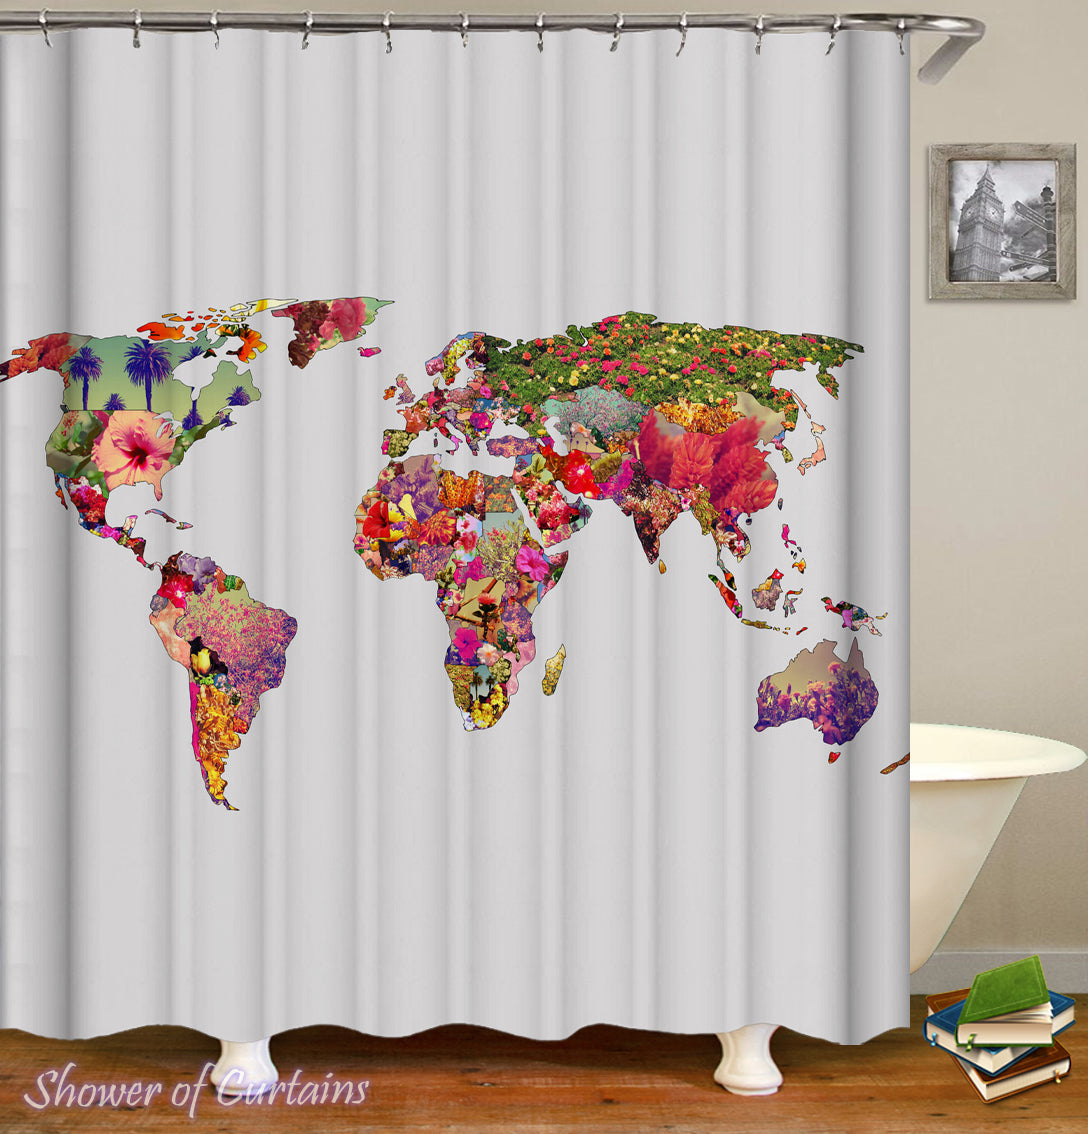 Shower Curtains Flowery World Map Shower of Curtains